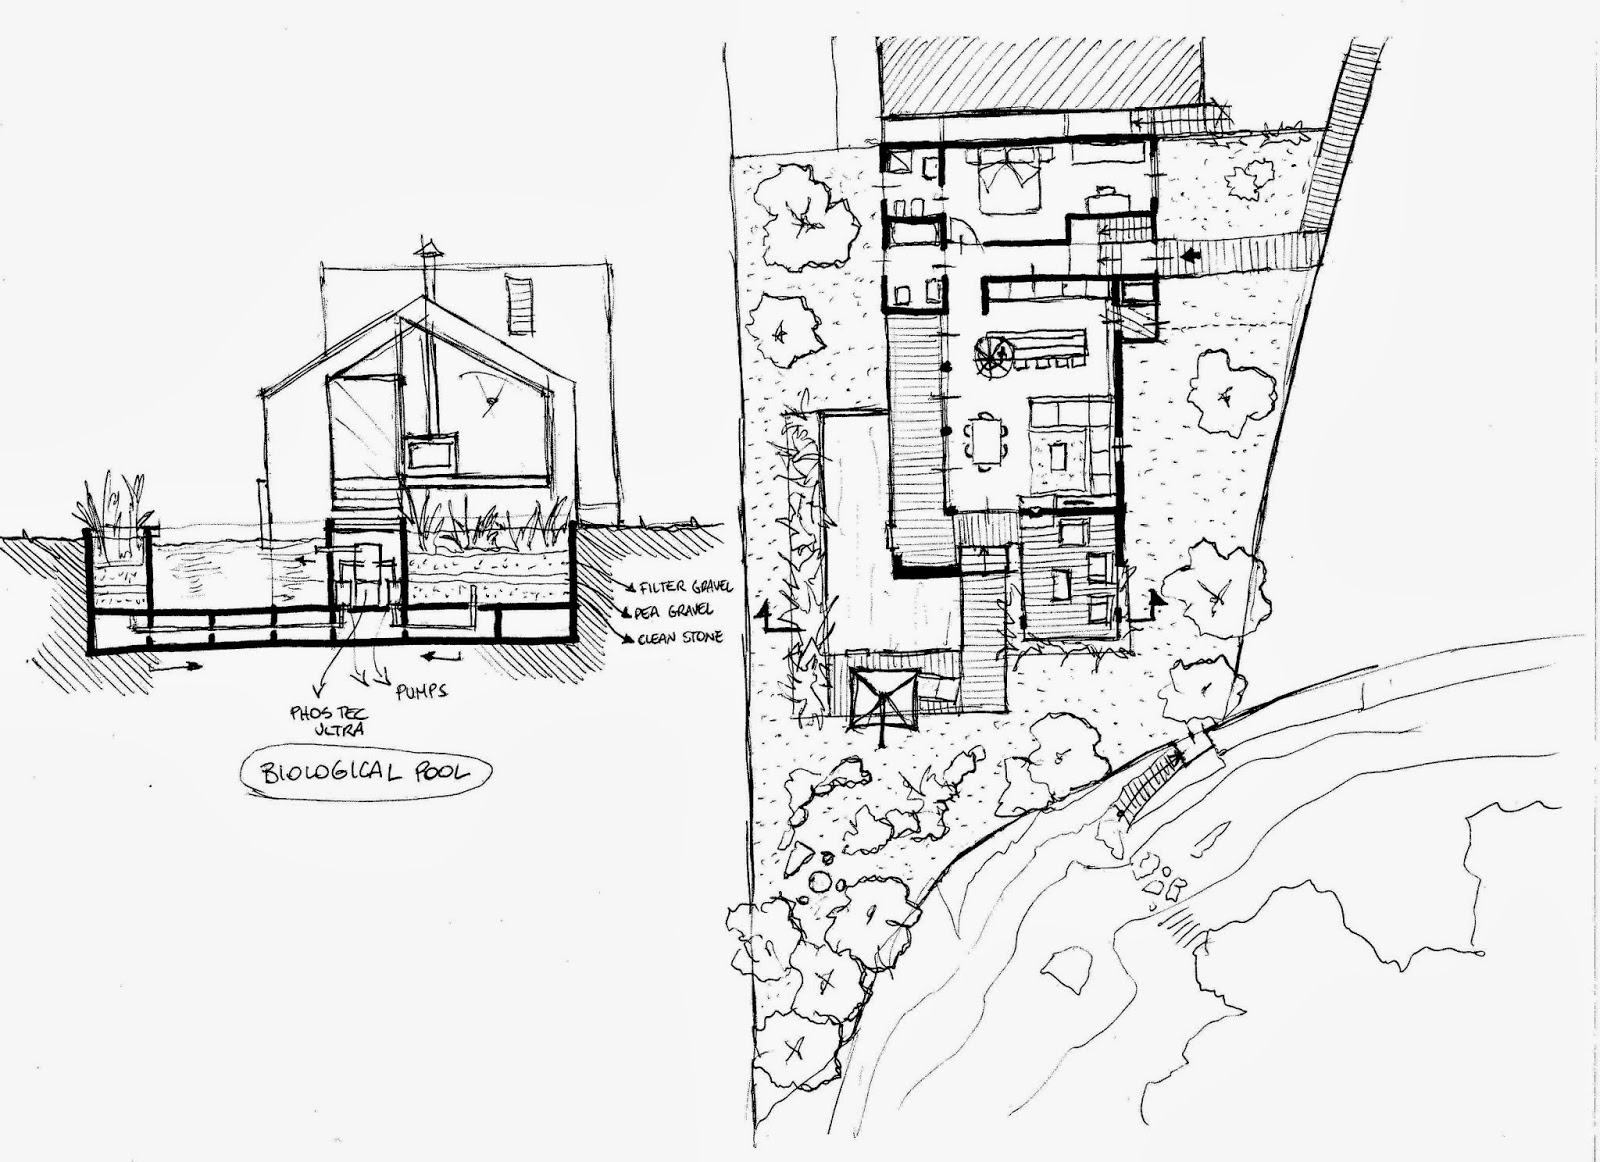 Thinking Architecture Through The Sketch: EXTENSION HOUSE